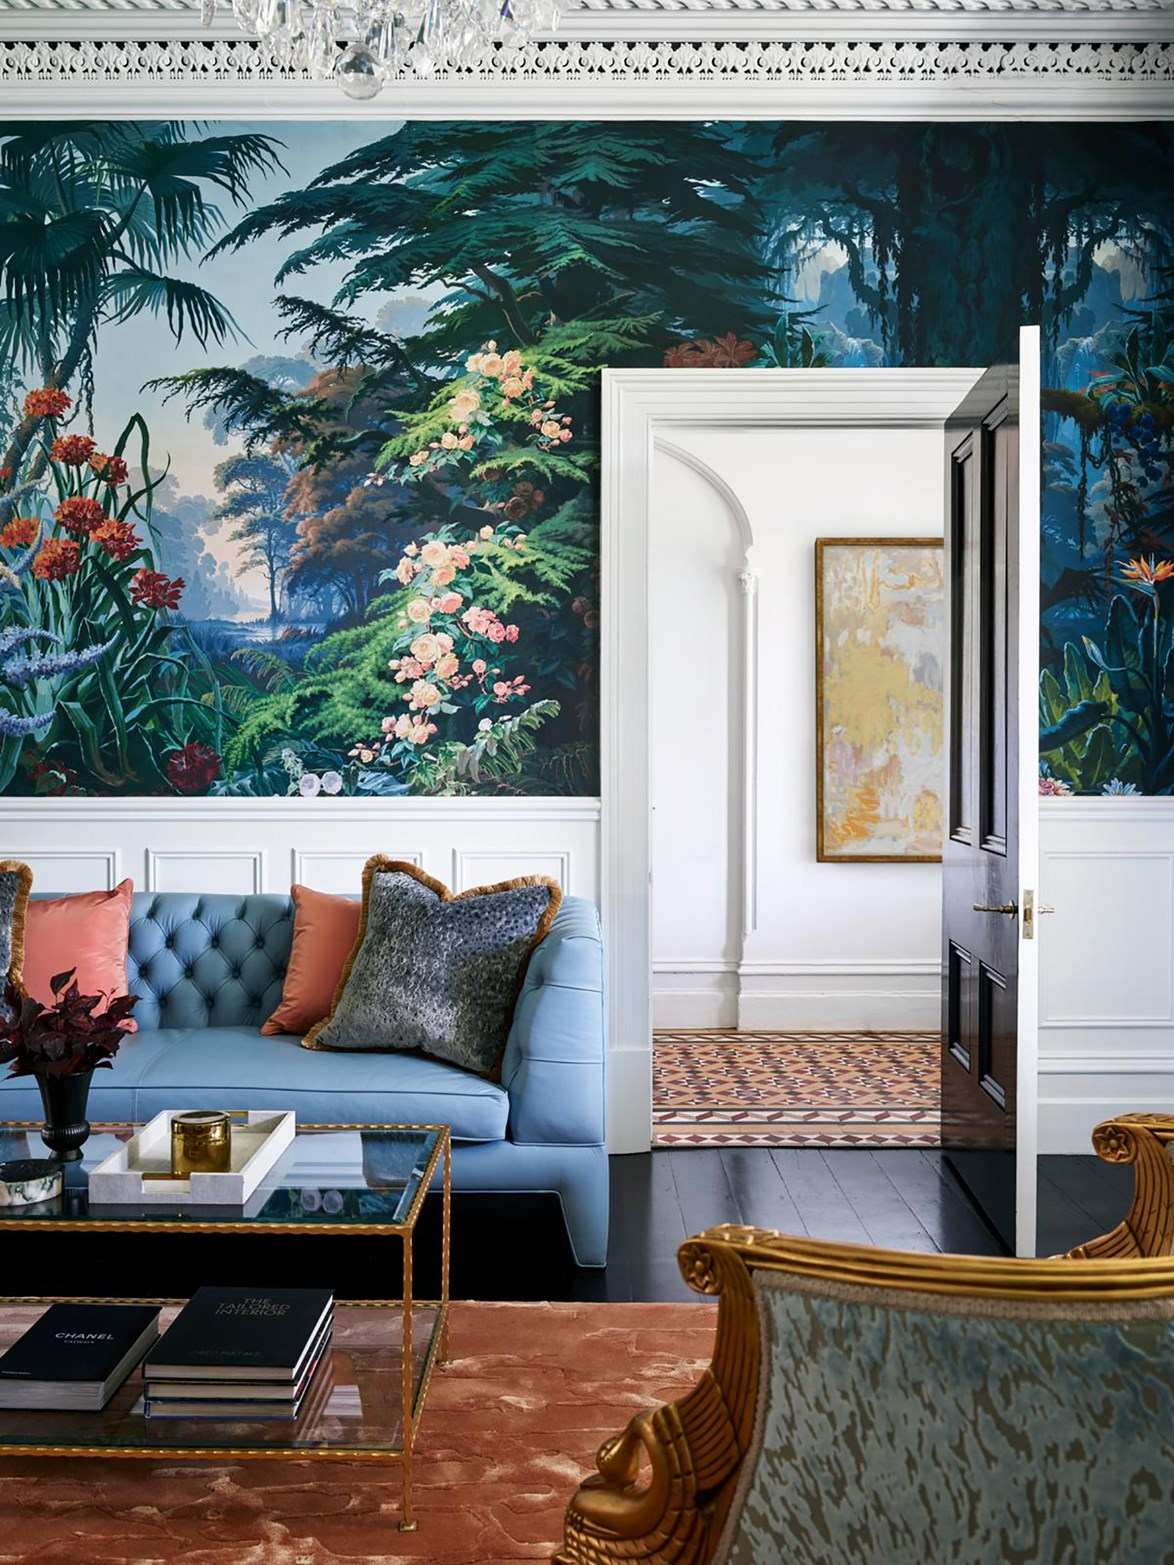 """White wainscoting anchors the florid statement wallpaper in [this Sydney living room](https://www.homestolove.com.au/house-and-garden-top-50-rooms-finalists-2019-20775